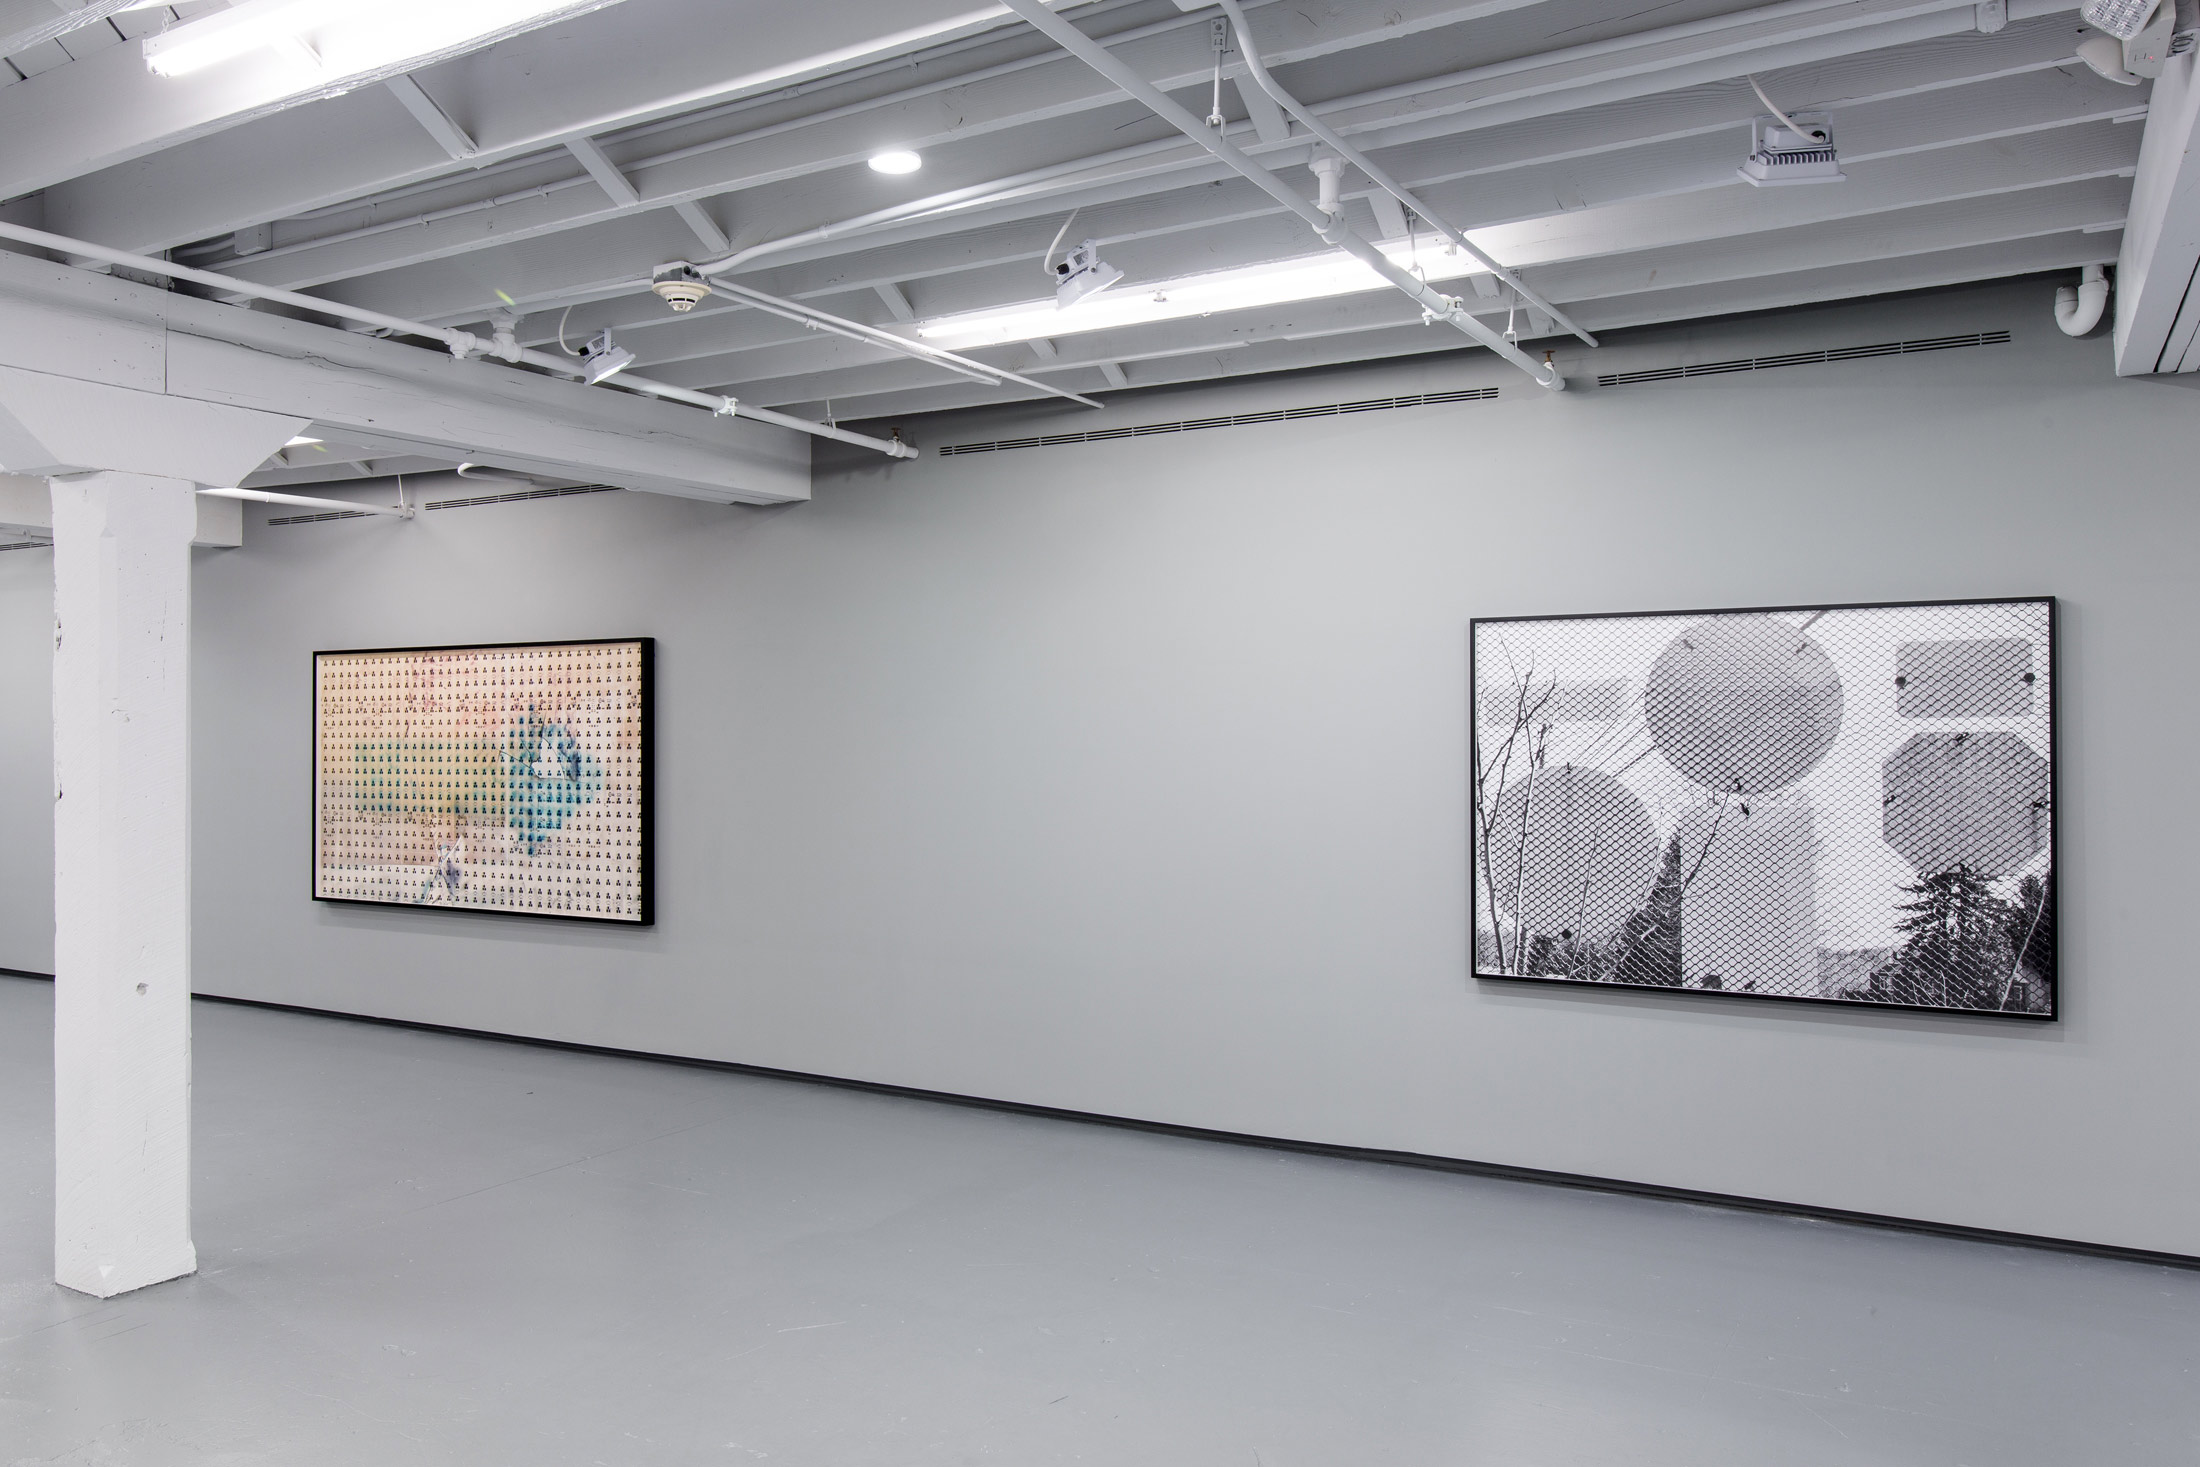 Installation View: Shannon Ebner, A Public Character, 2015, at ICA Miami